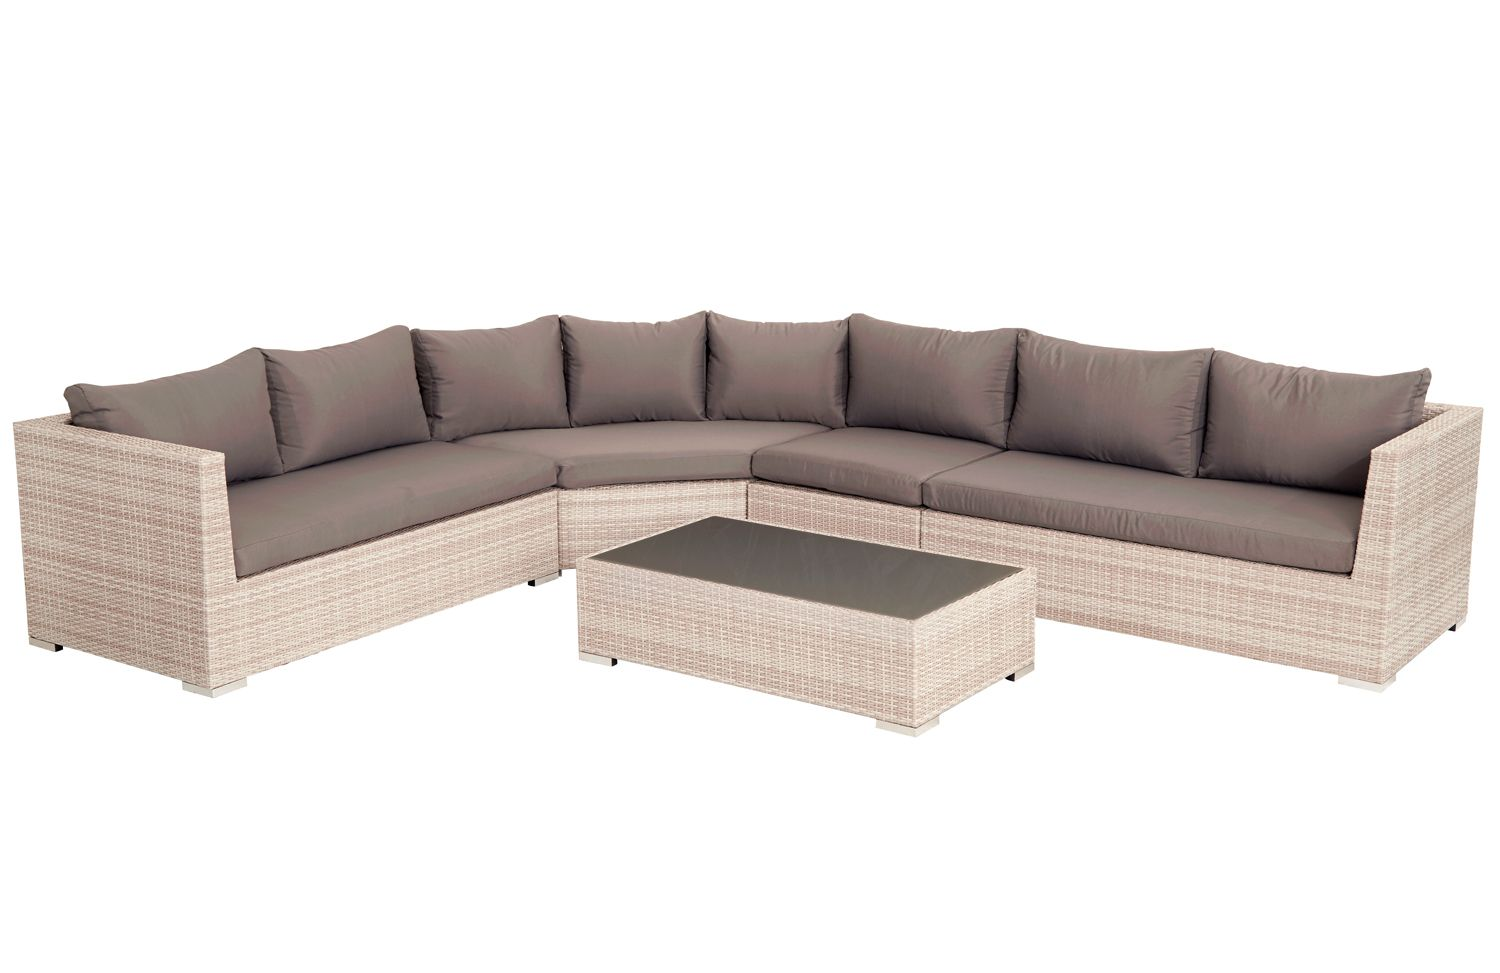 Barbeques Galore - Products - Metro 5 Piece Modular Lounge Setting - Barbeques Galore - Products - Metro 5 Piece Modular Lounge Setting